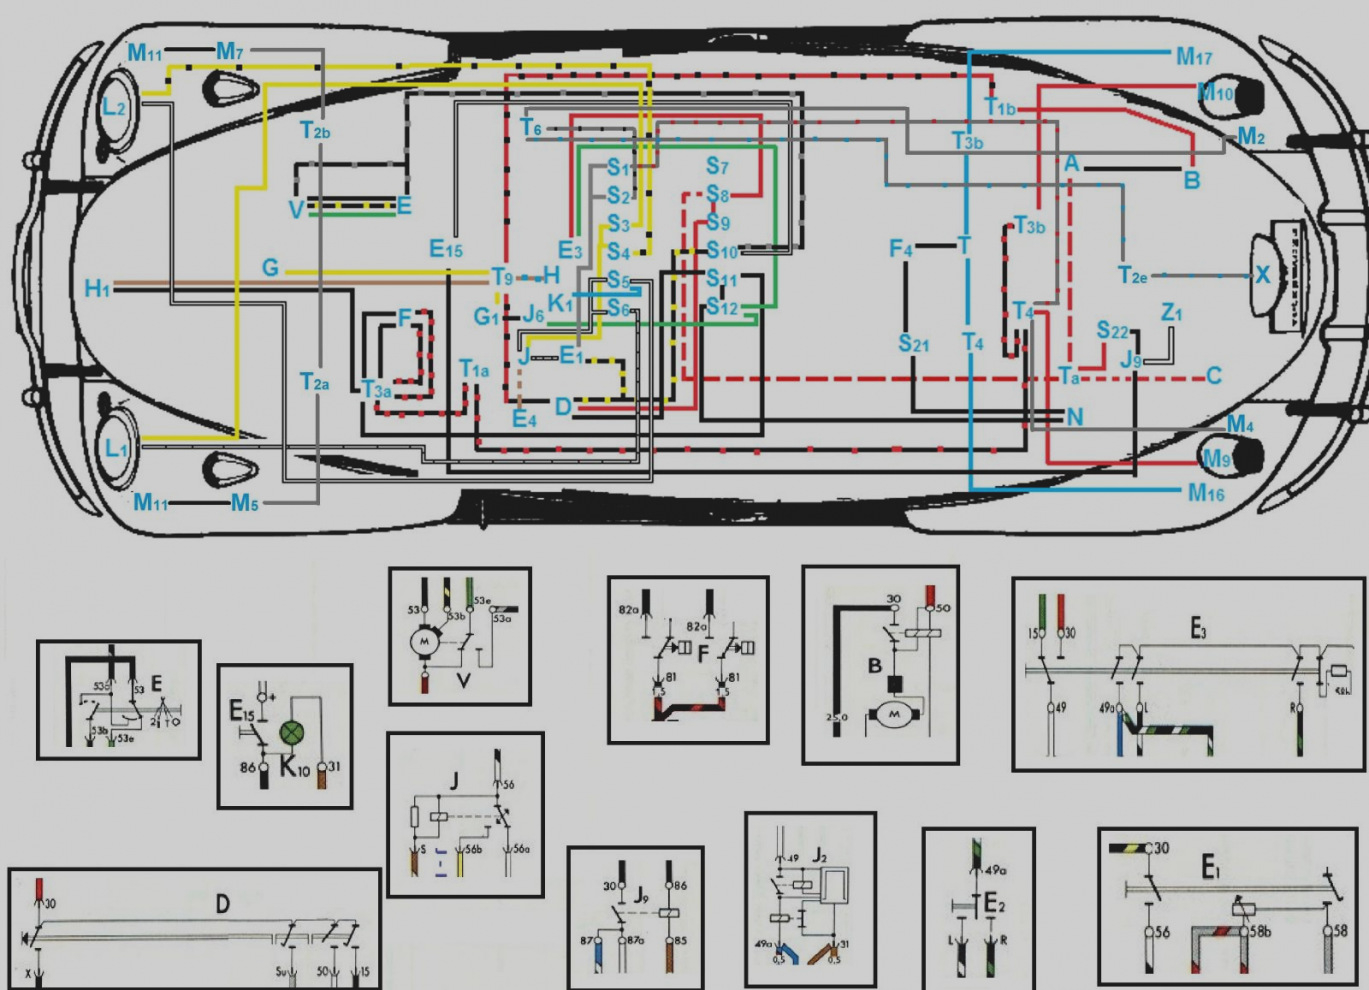 2001 Vw Beetle Wiring Diagram Gallery Sample Download Wonderful Volkswagen Does Anyone Have